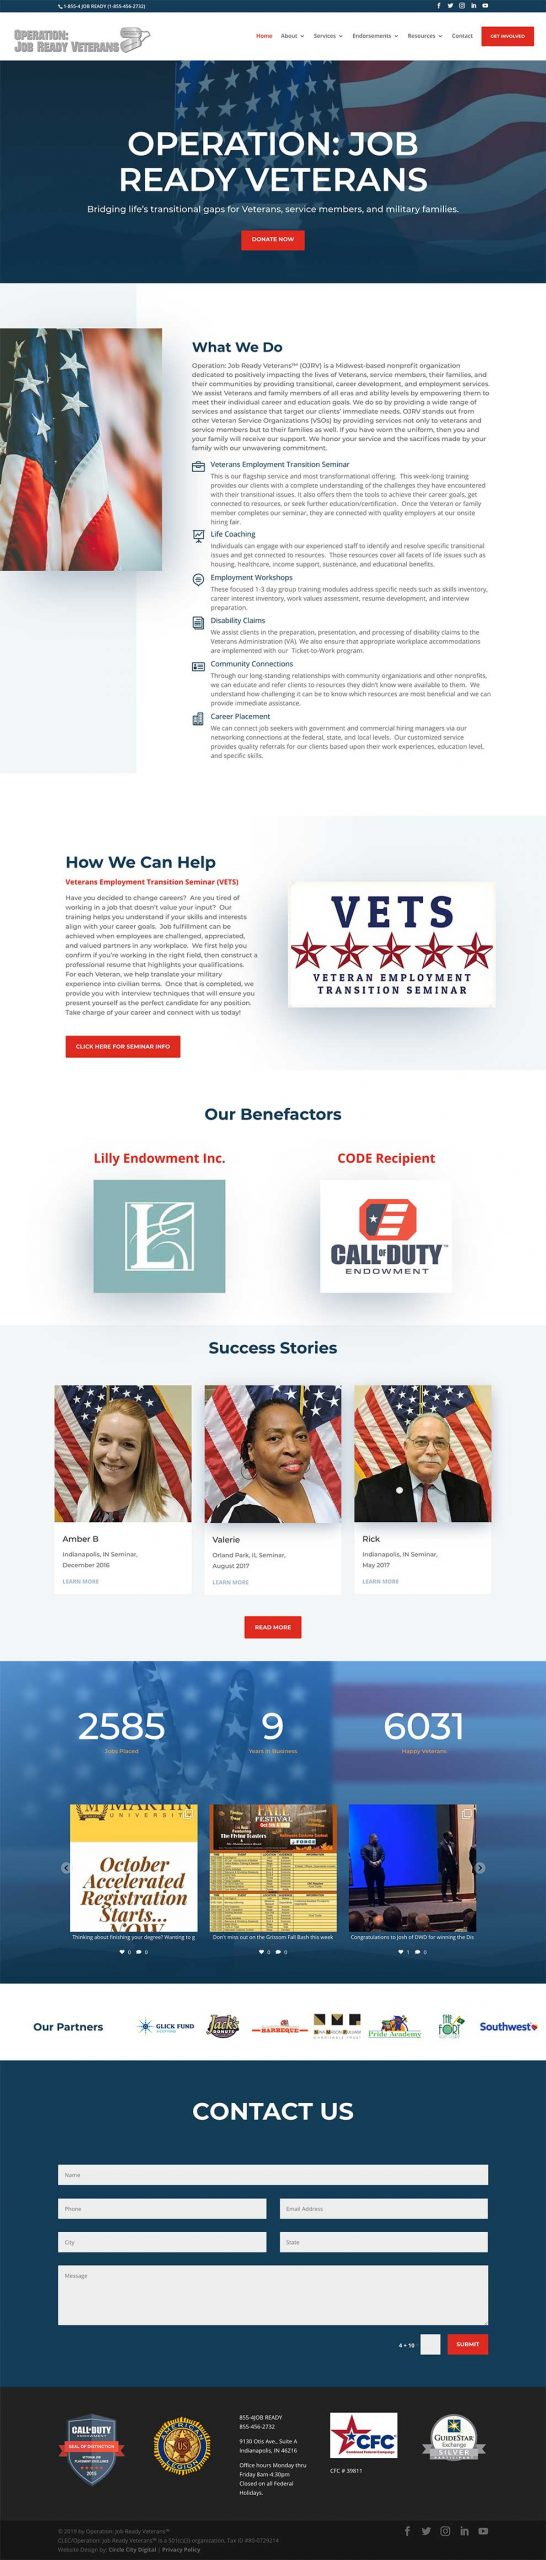 Operation: Job Ready Vets Non-Profit Website